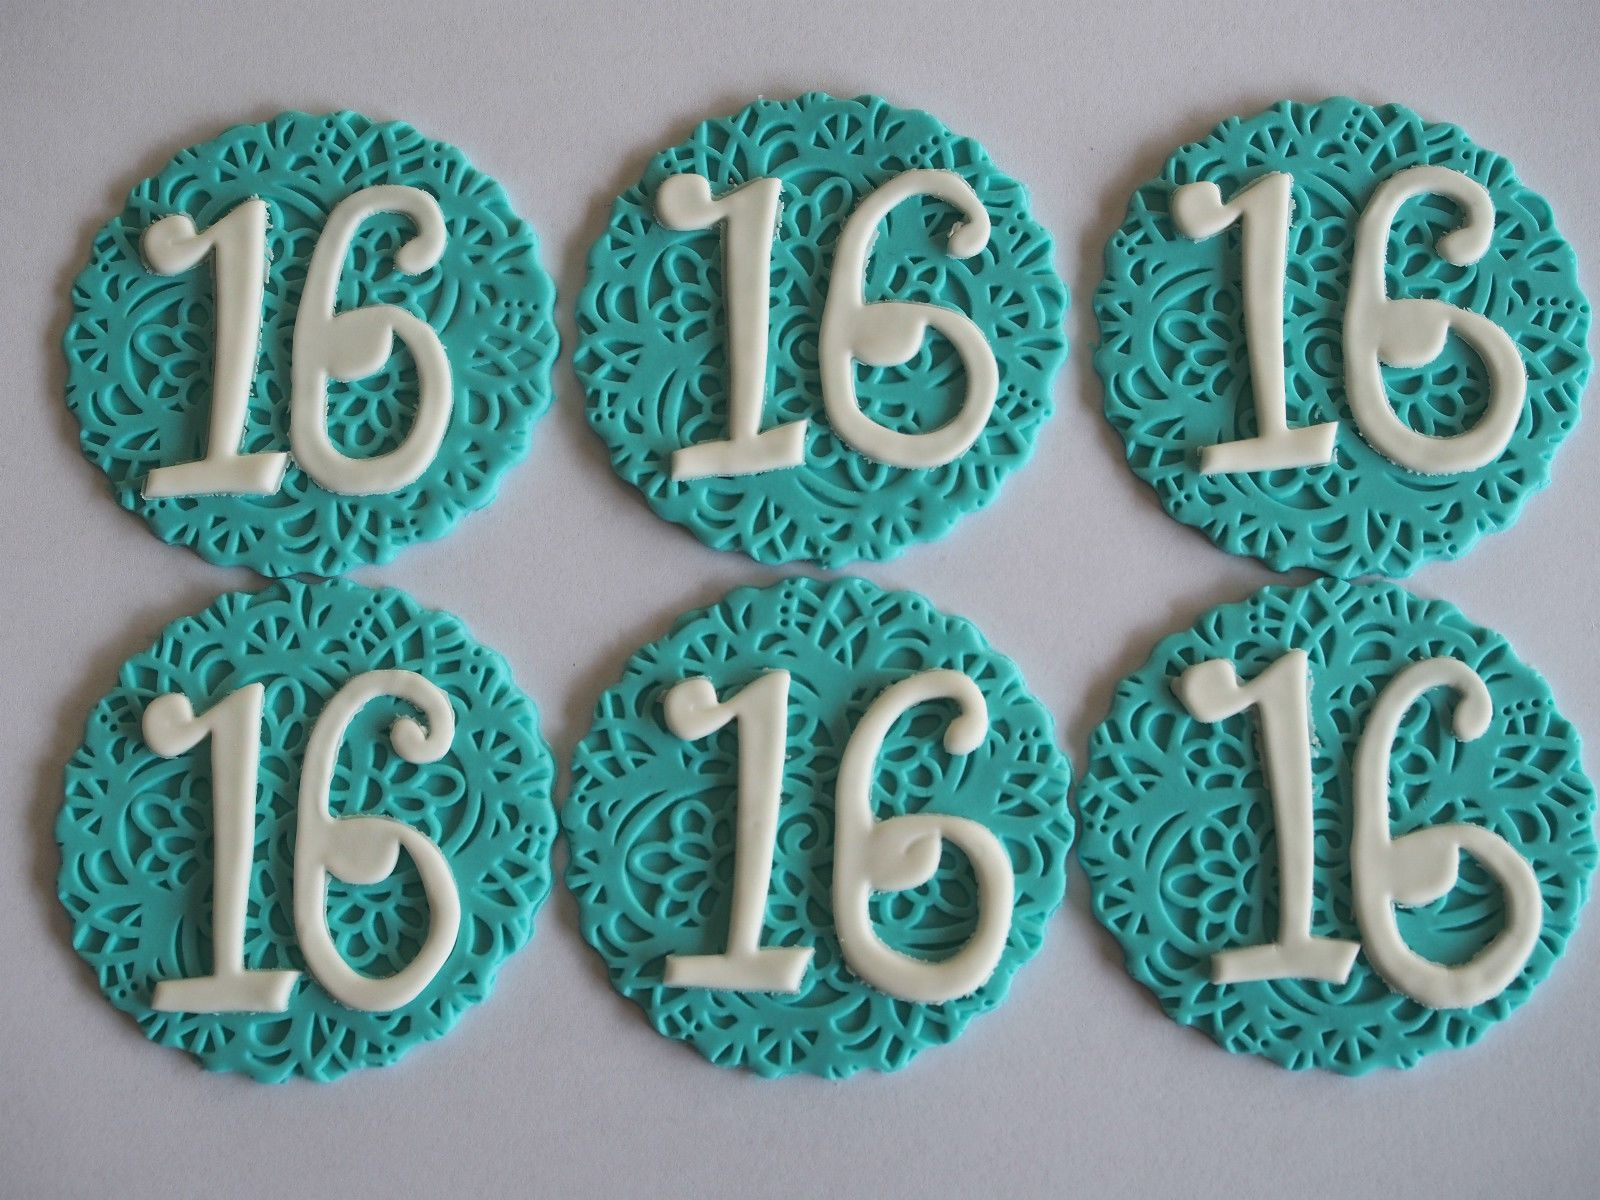 Details about 12 number disc cupcake toppers edible cake